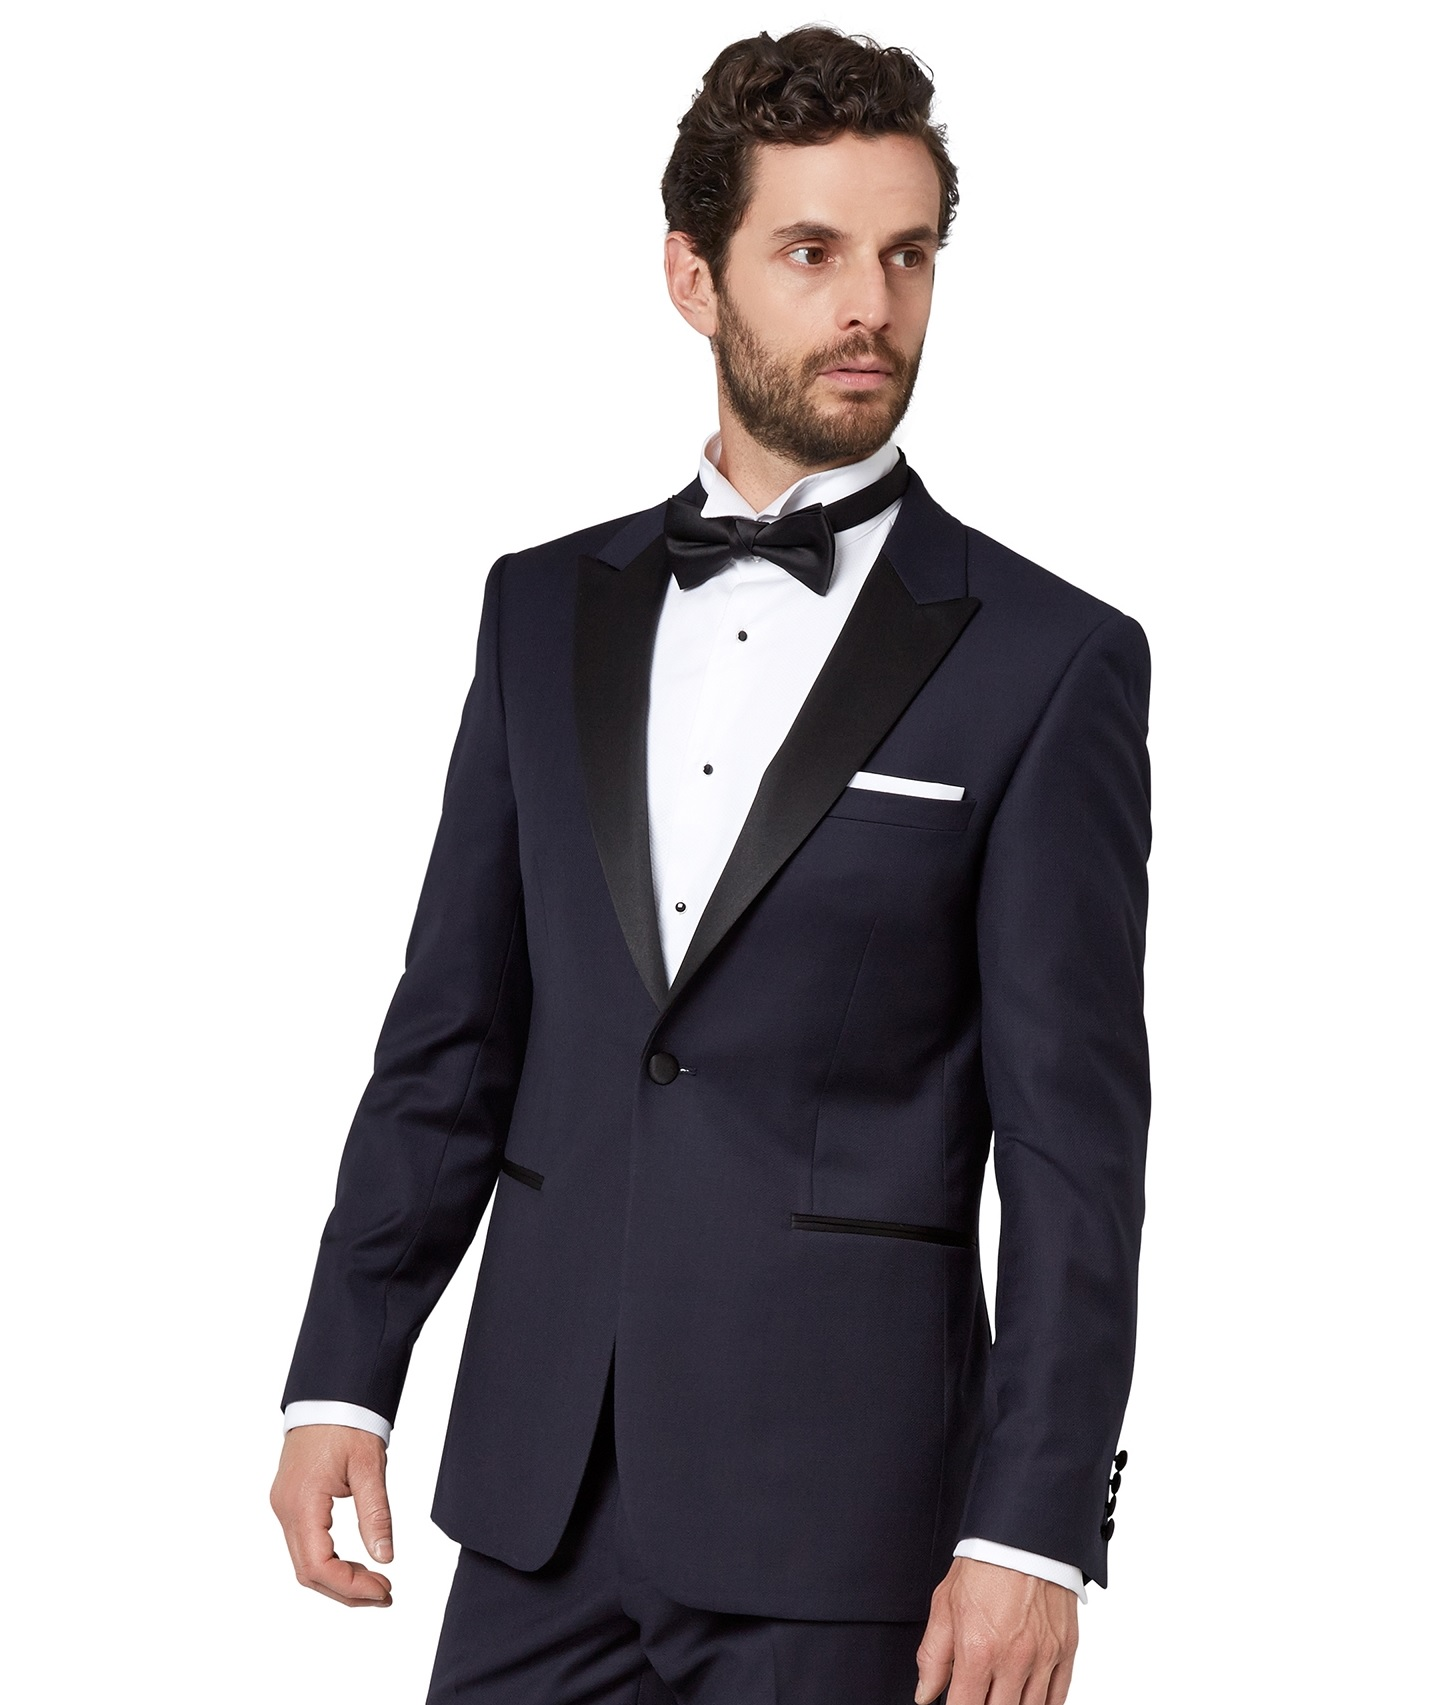 look for yet not vulgar buying now Details about Moss 1851 Mens Navy Blue Textured Tuxedo Jacket Tailored Fit  Single Breasted